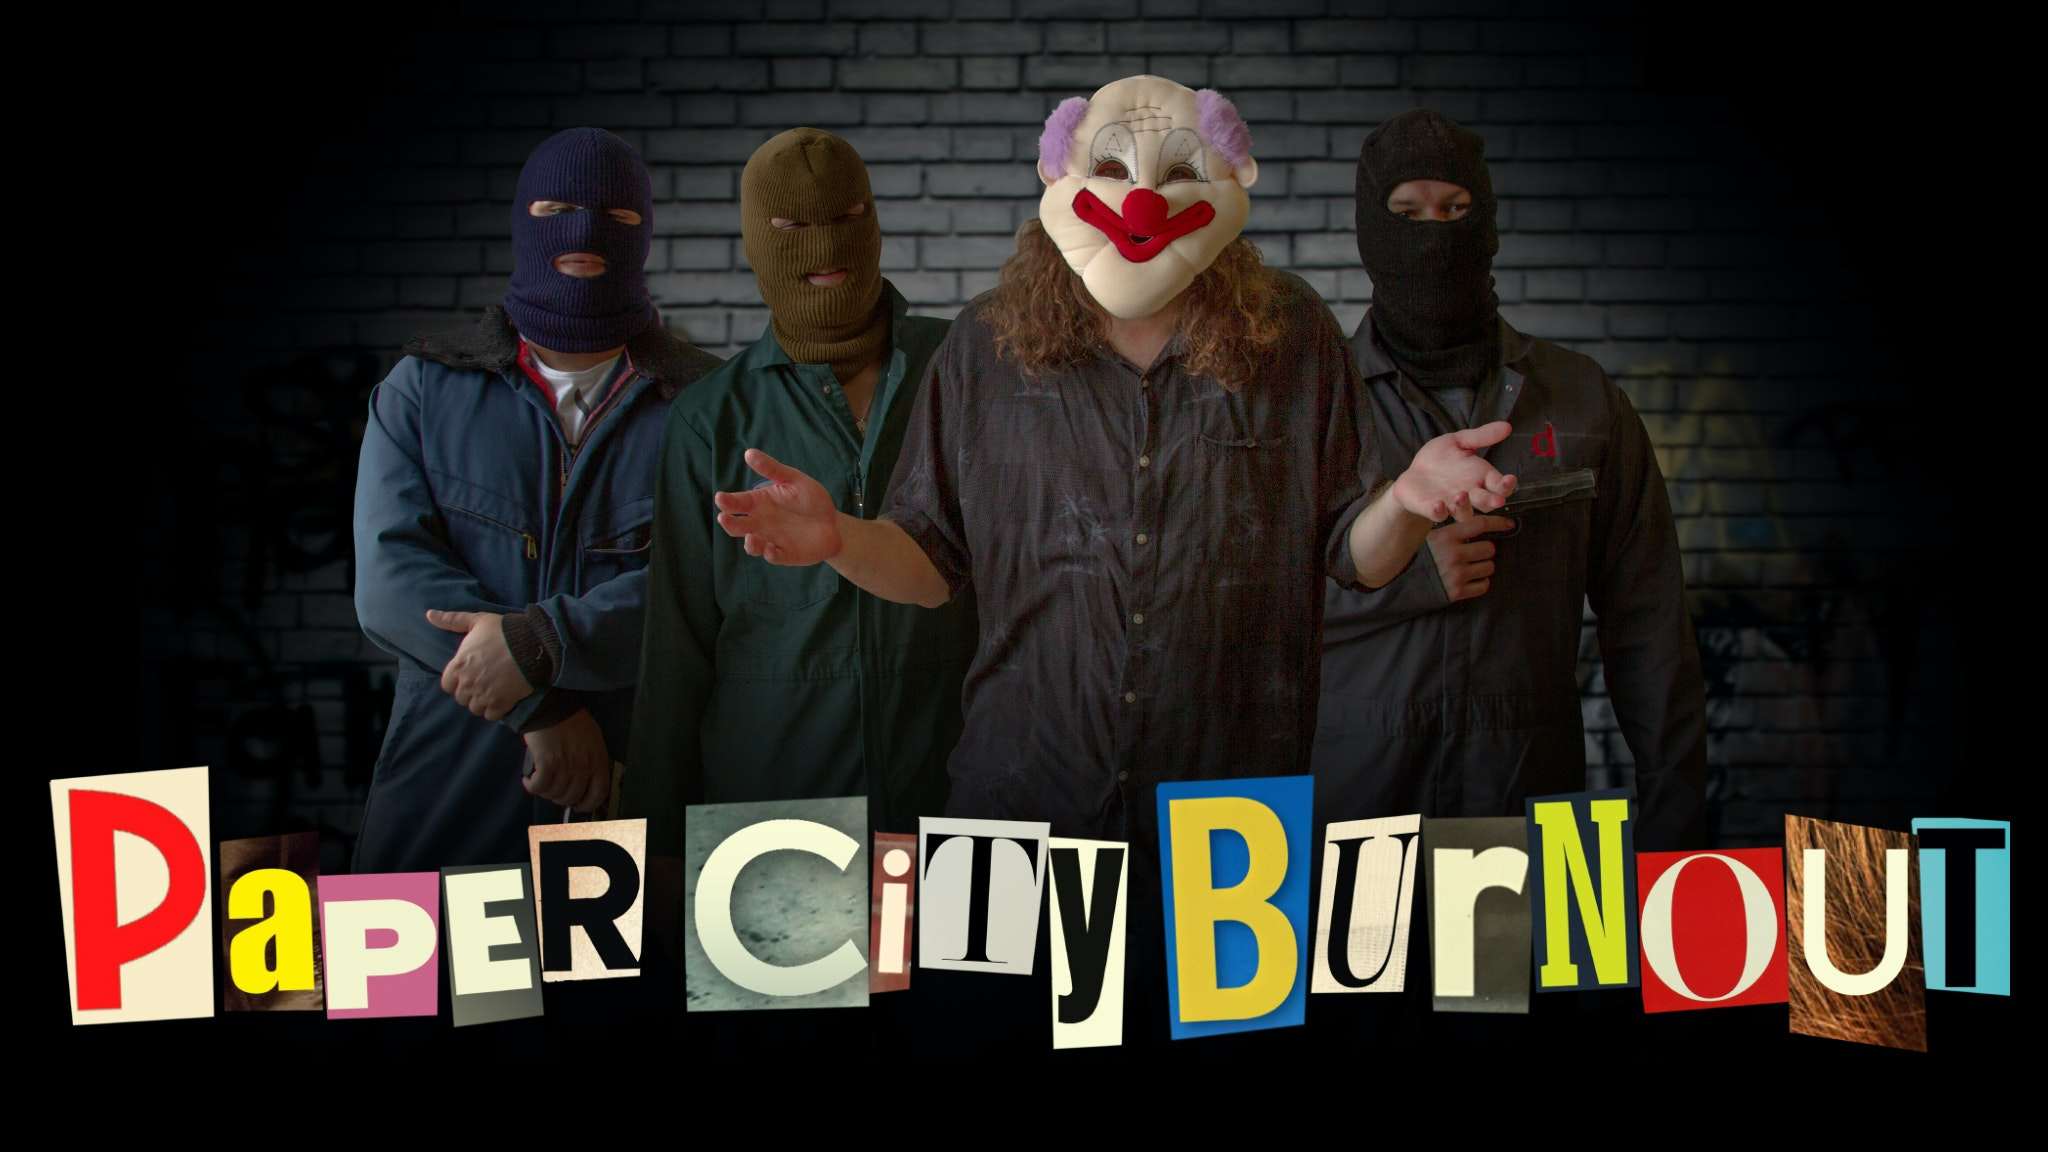 Paper City Burnout - From Diabolical Films